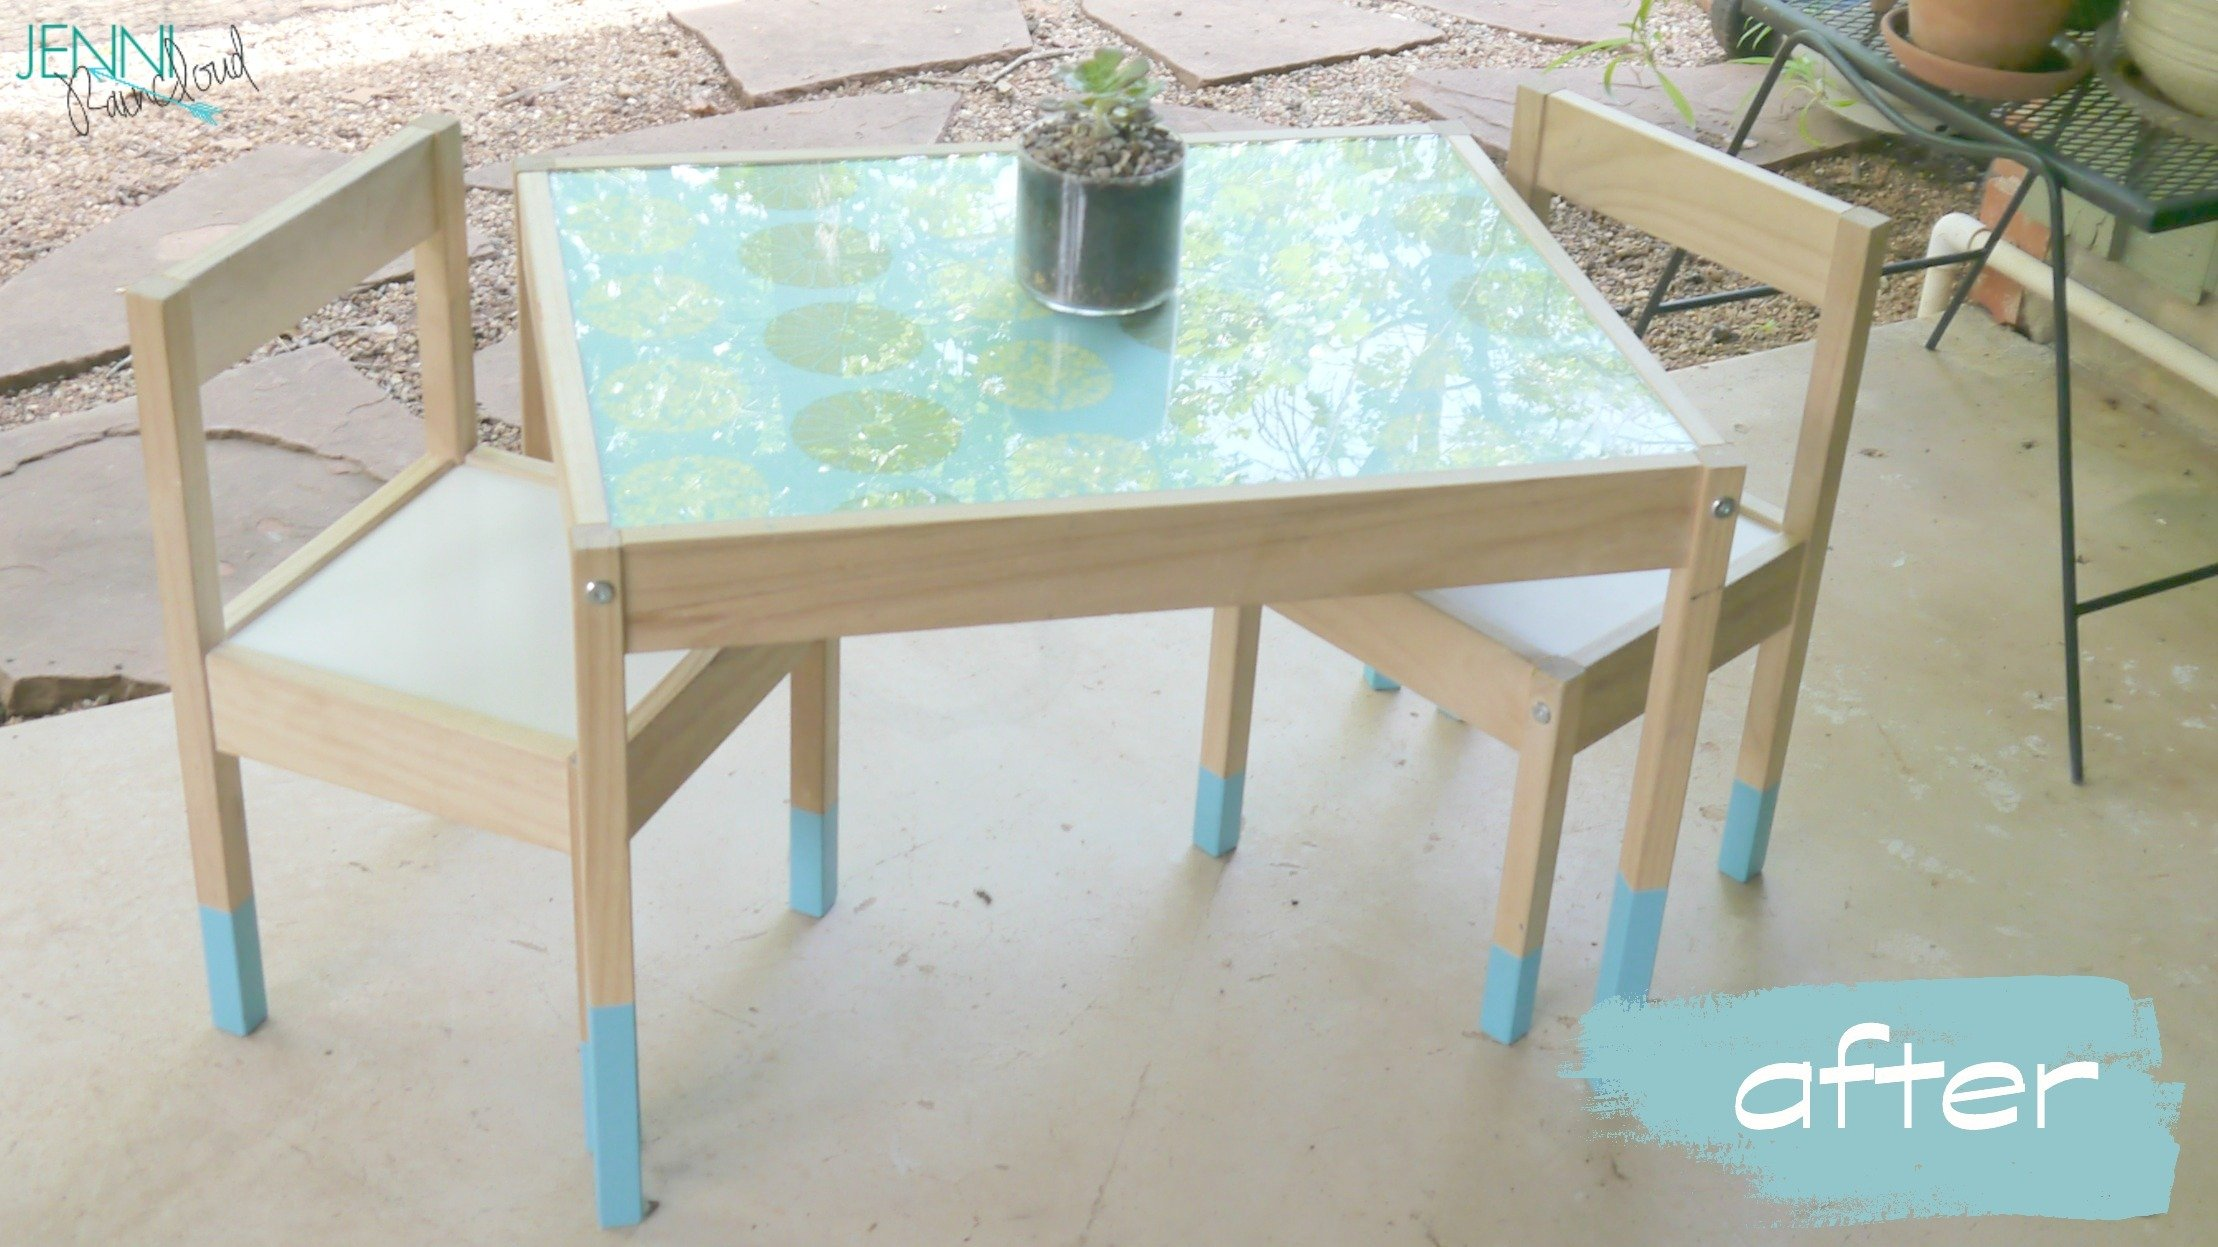 Ikea kids table and chairs - Ikea Hack Latt Ikea Hack Latt Paint Dipped Table 2